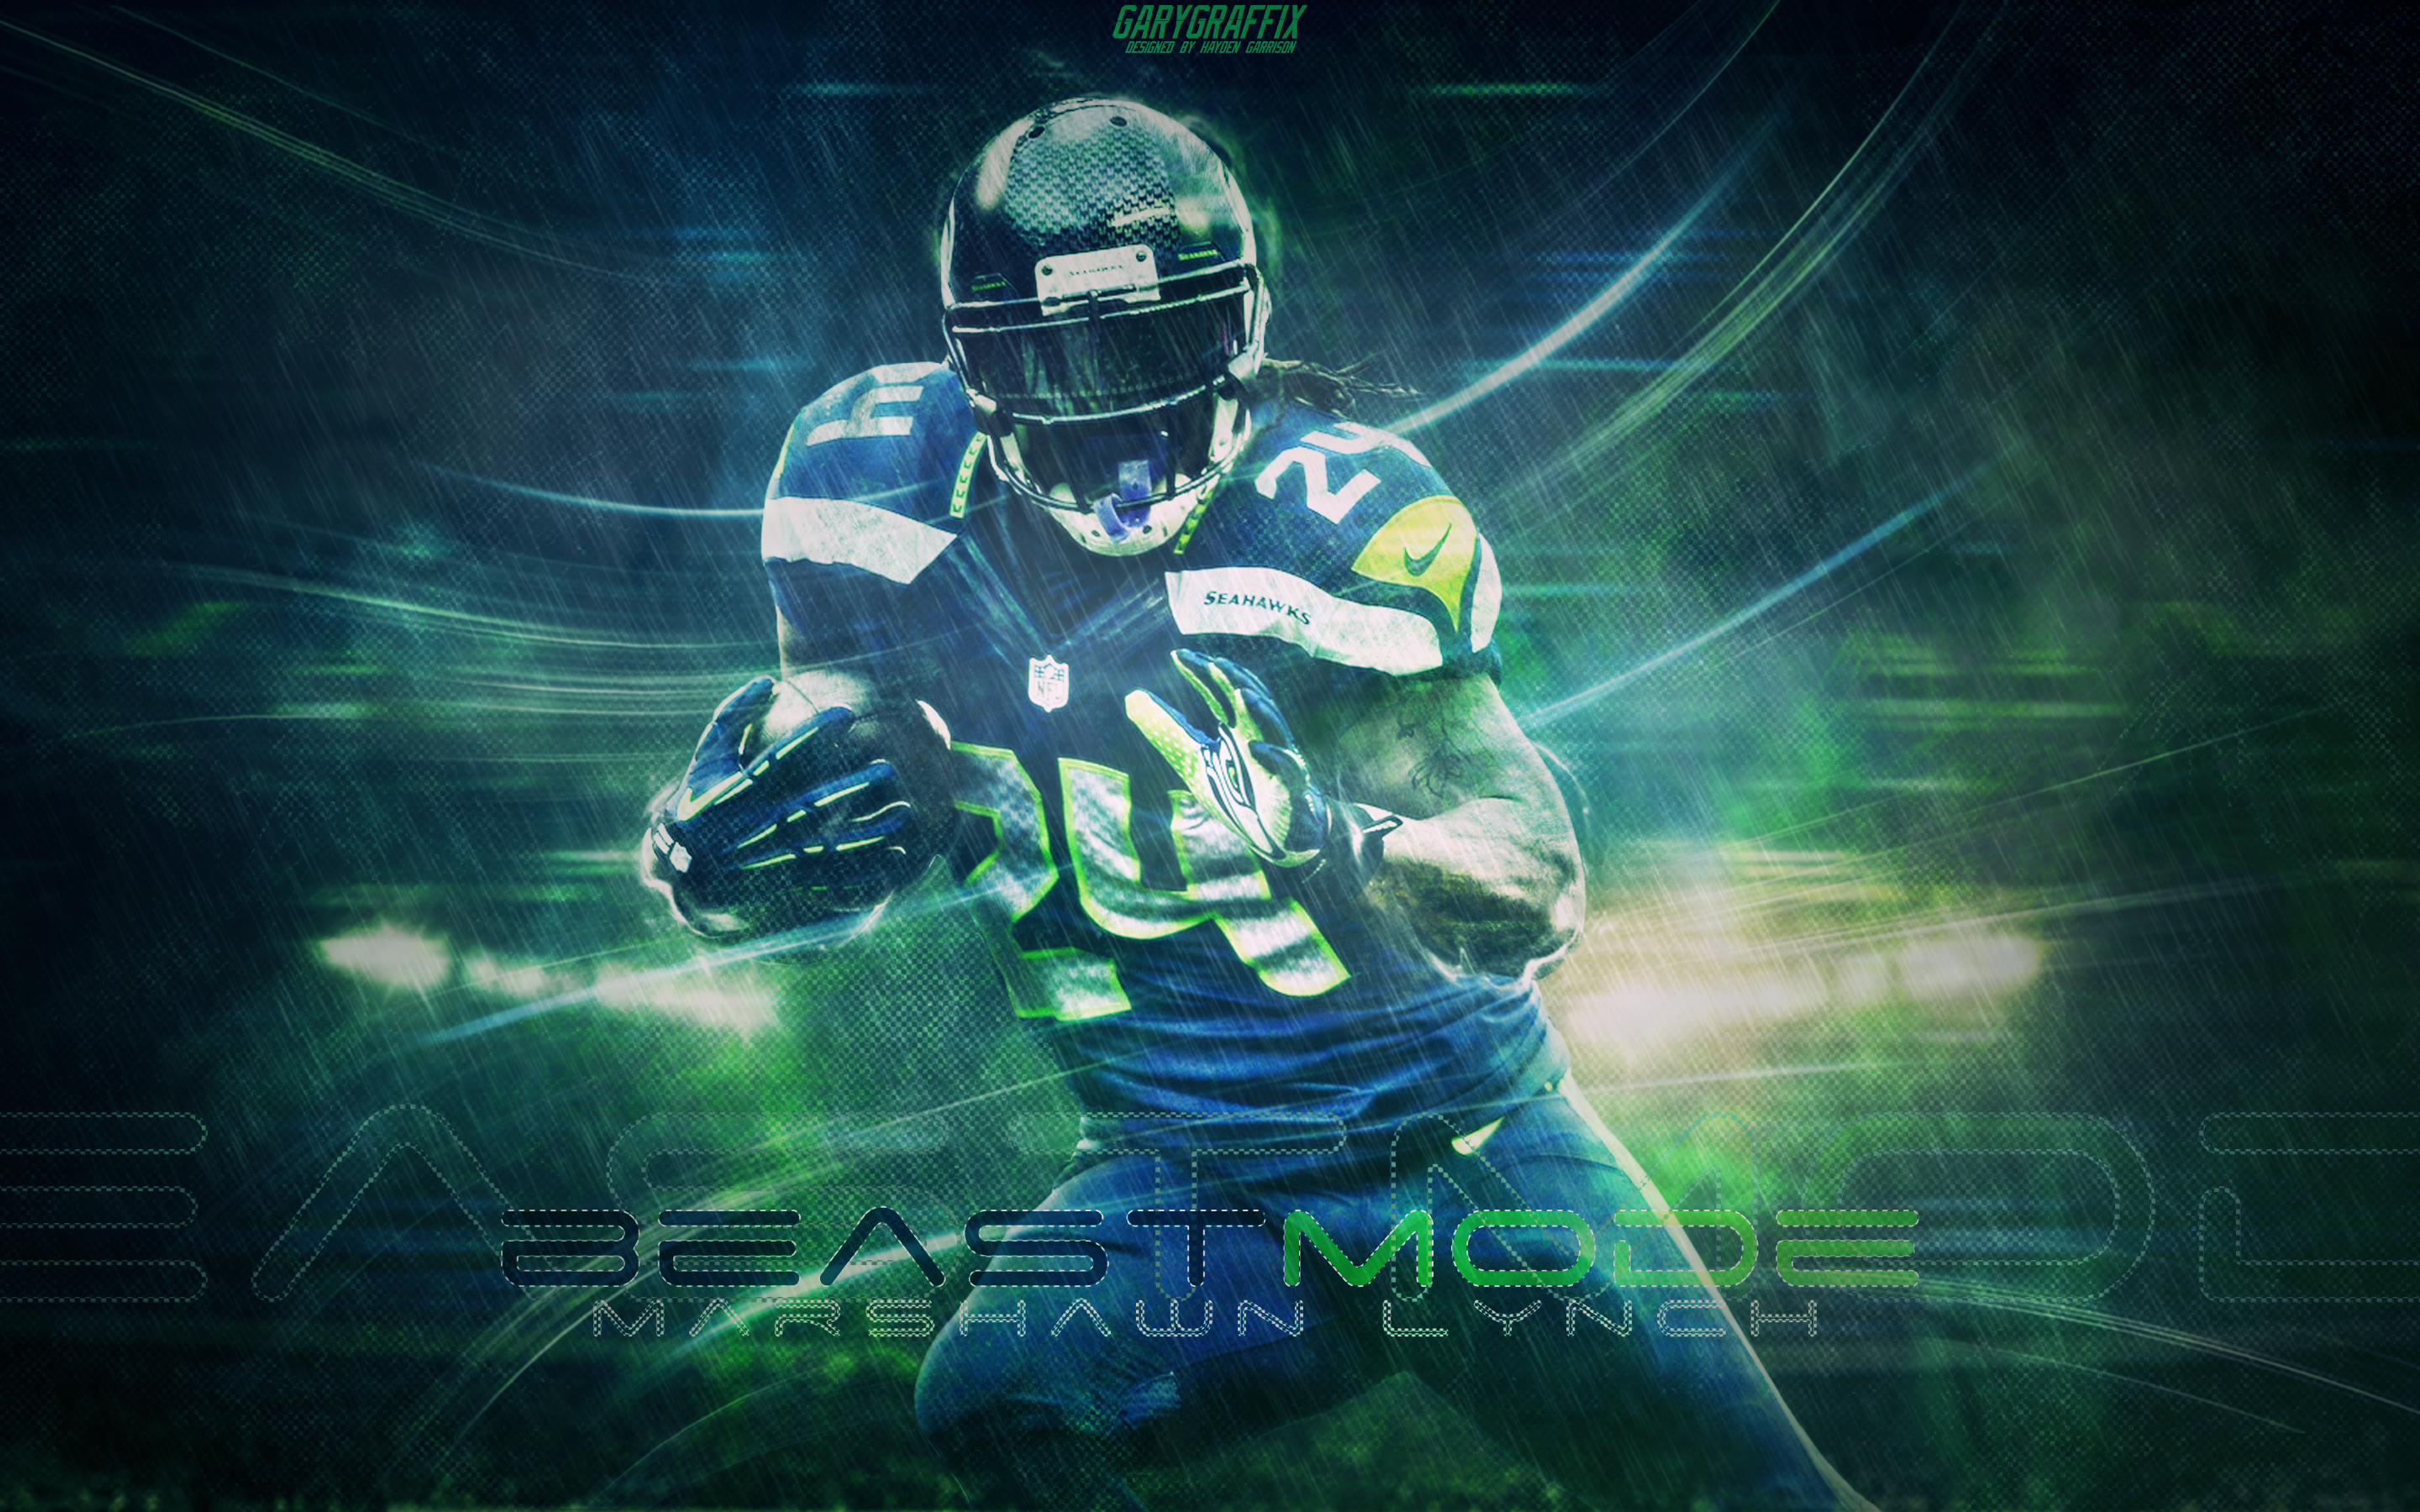 marshawn lynch wallpaper hd